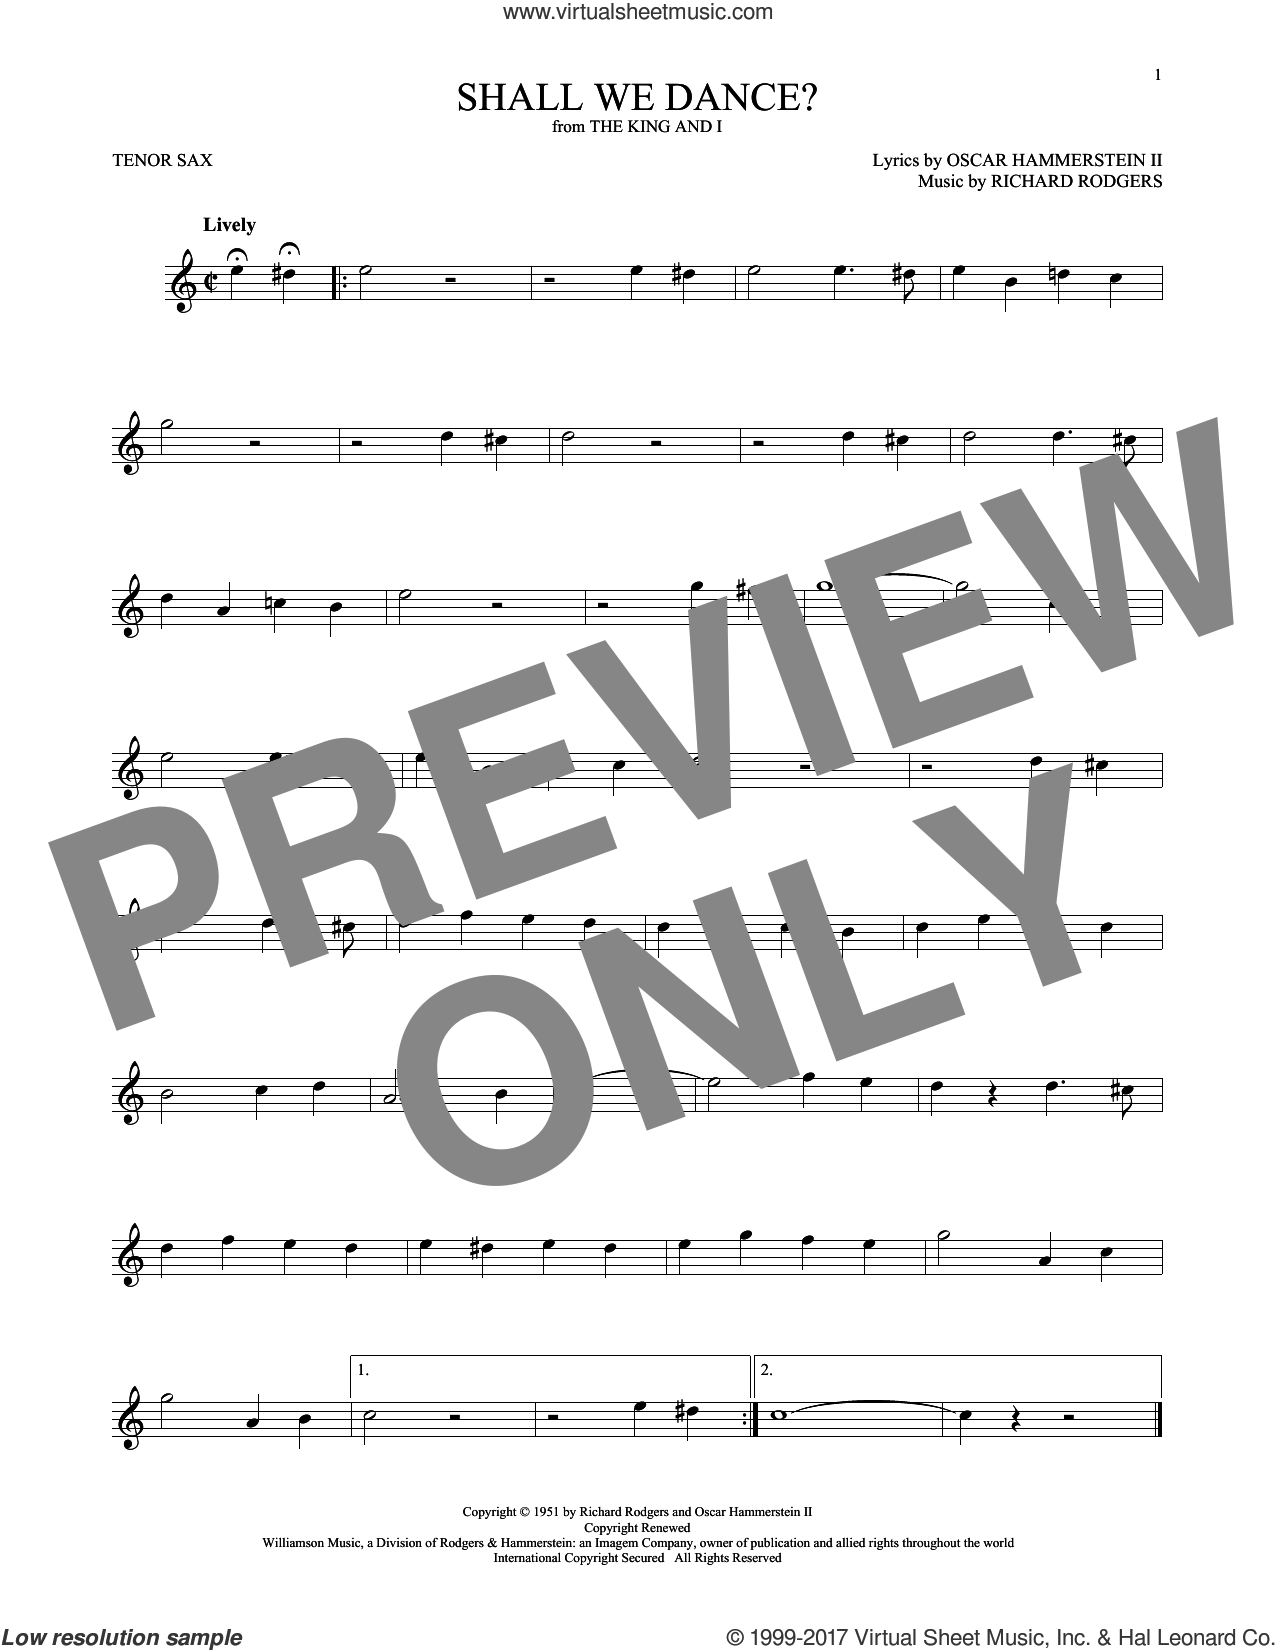 Shall We Dance? sheet music for tenor saxophone solo by Rodgers & Hammerstein, Oscar II Hammerstein and Richard Rodgers, intermediate skill level